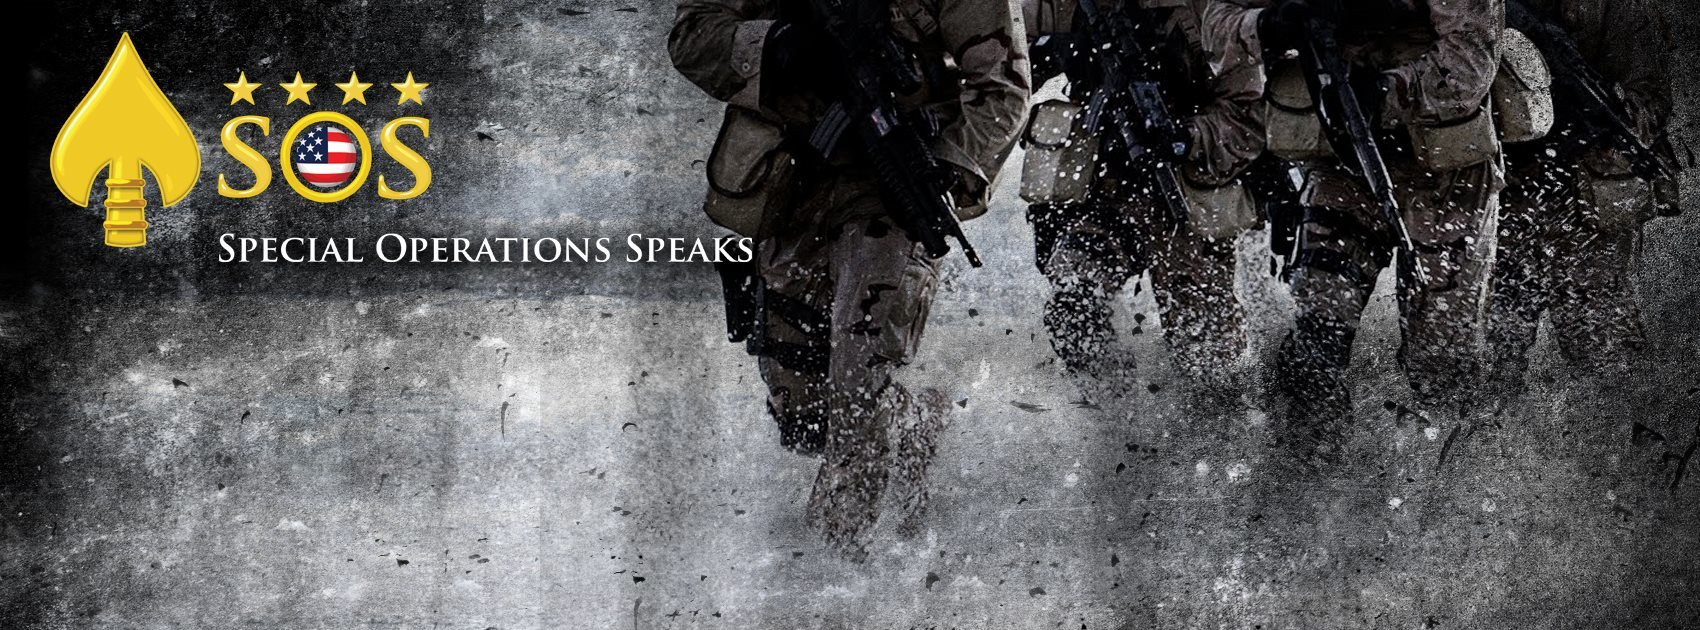 Special Operations Speaks PAC: General Fund